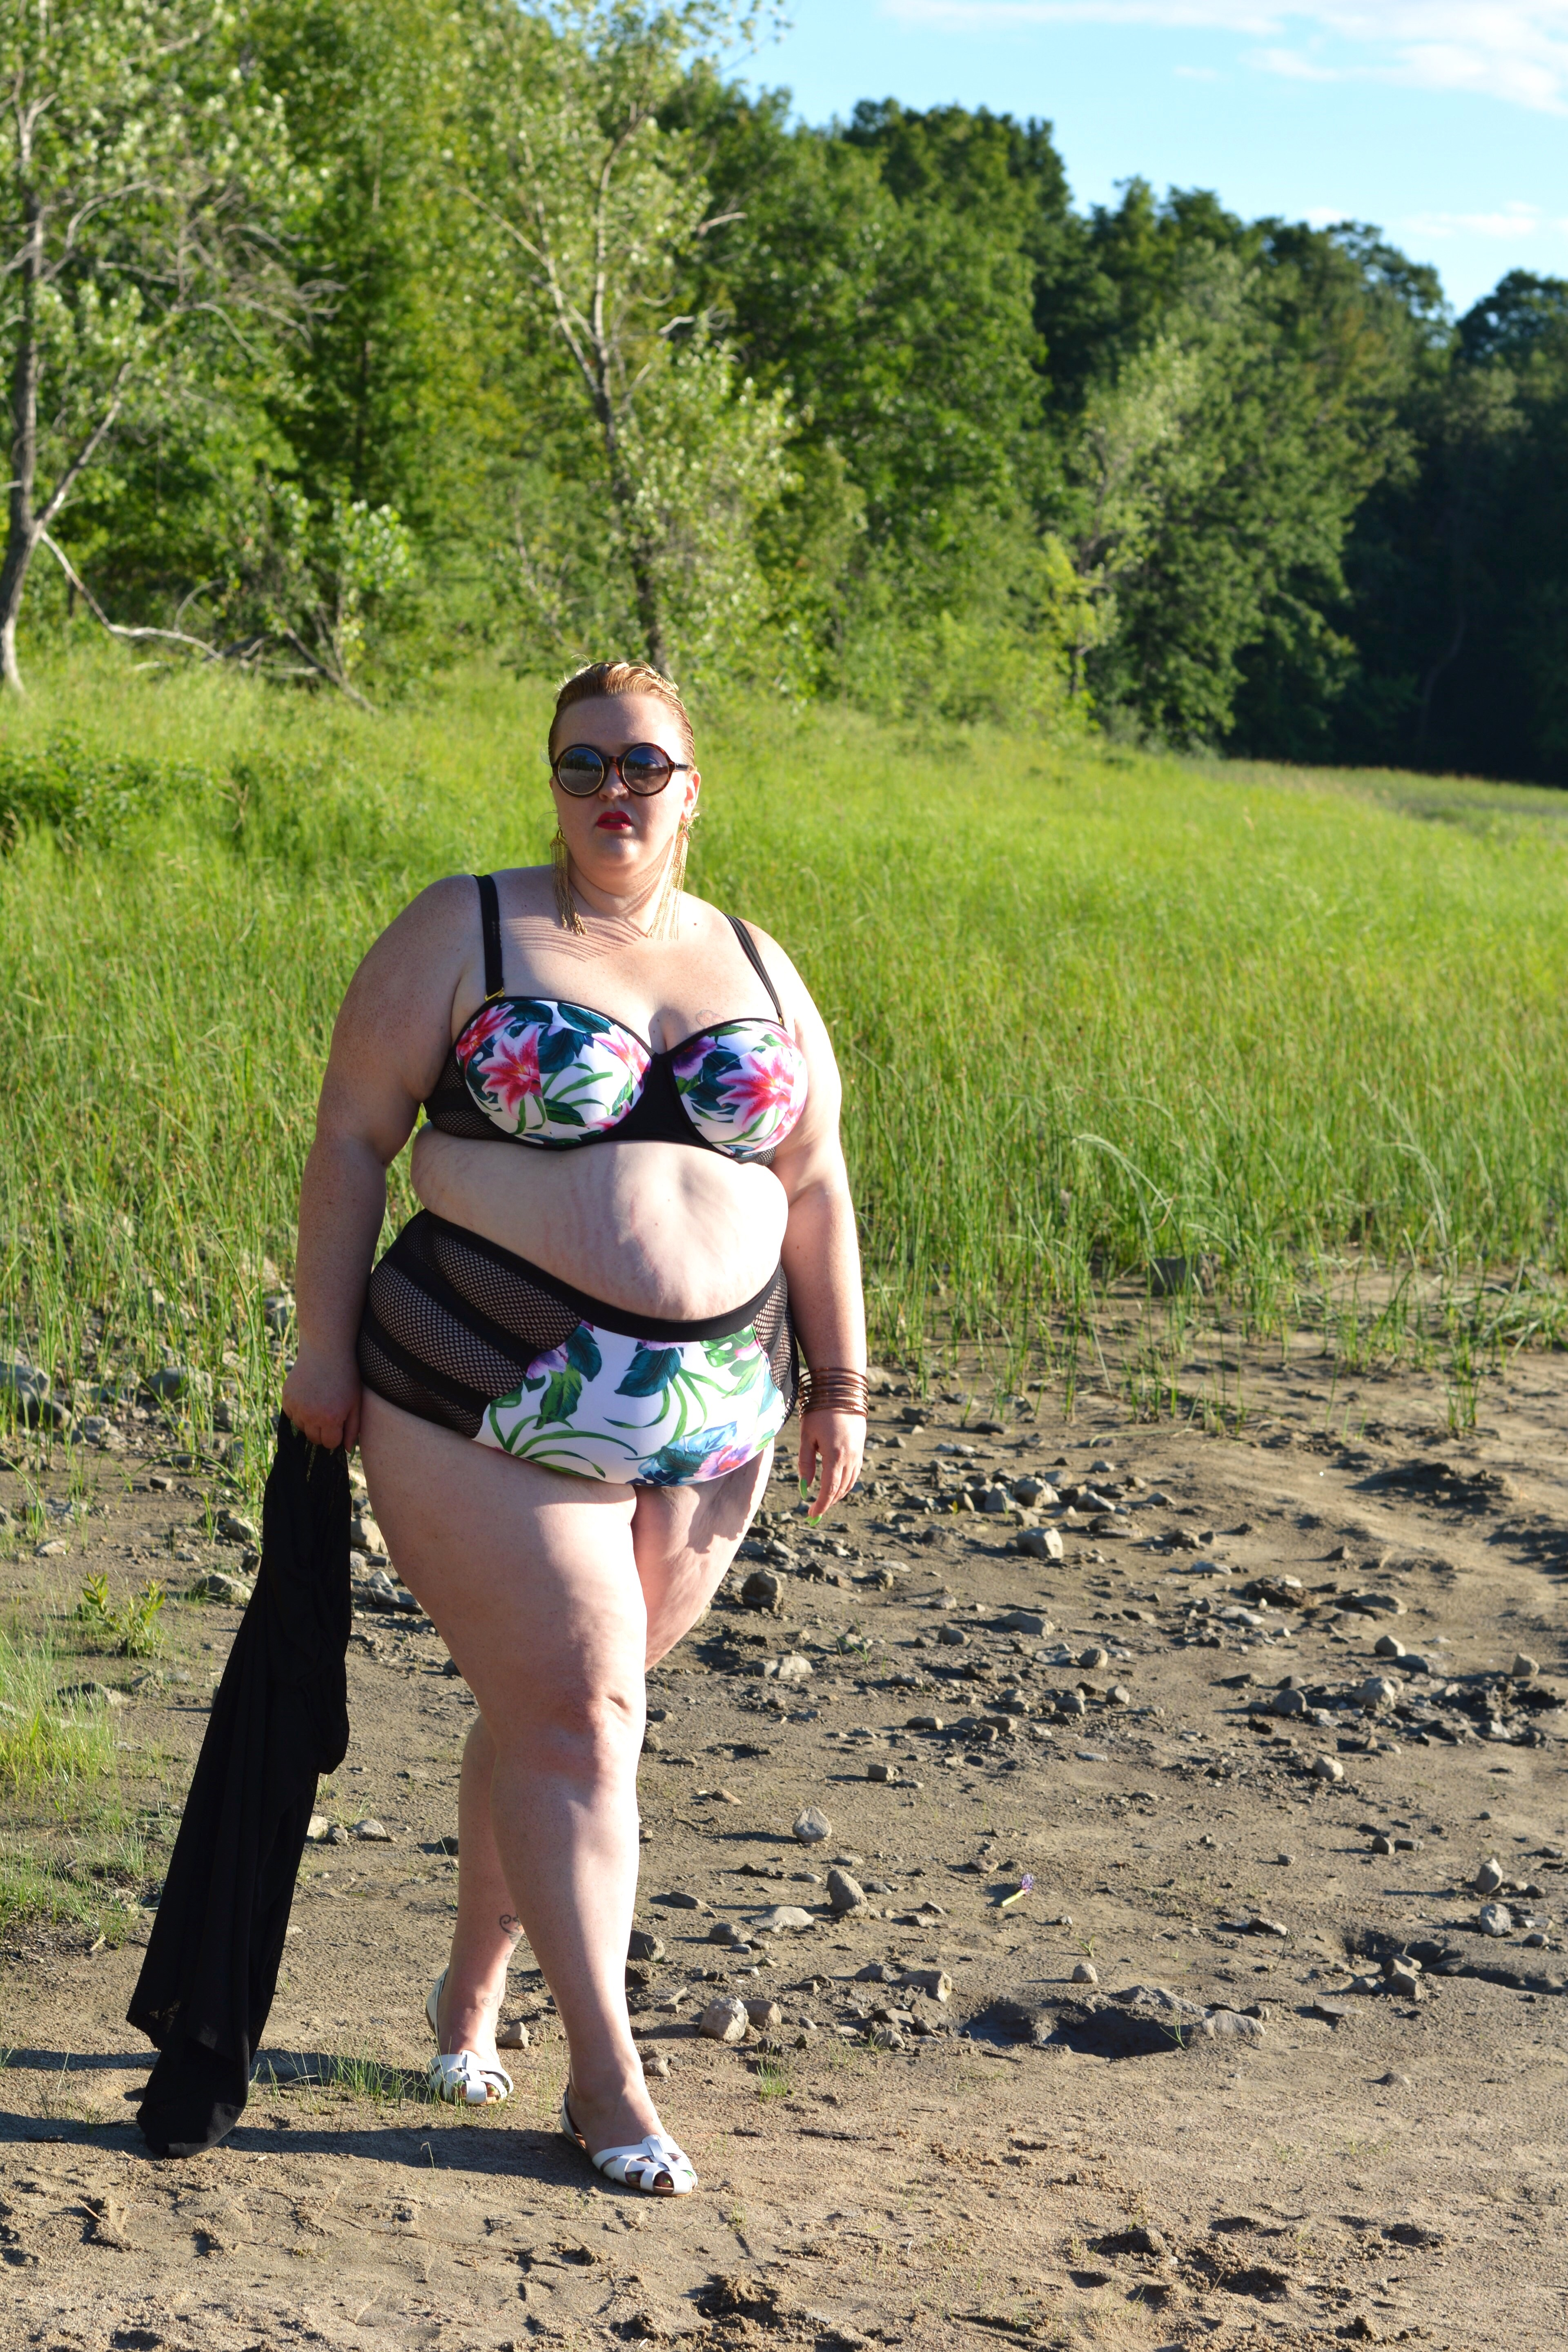 woman Outdoor chubby bbc